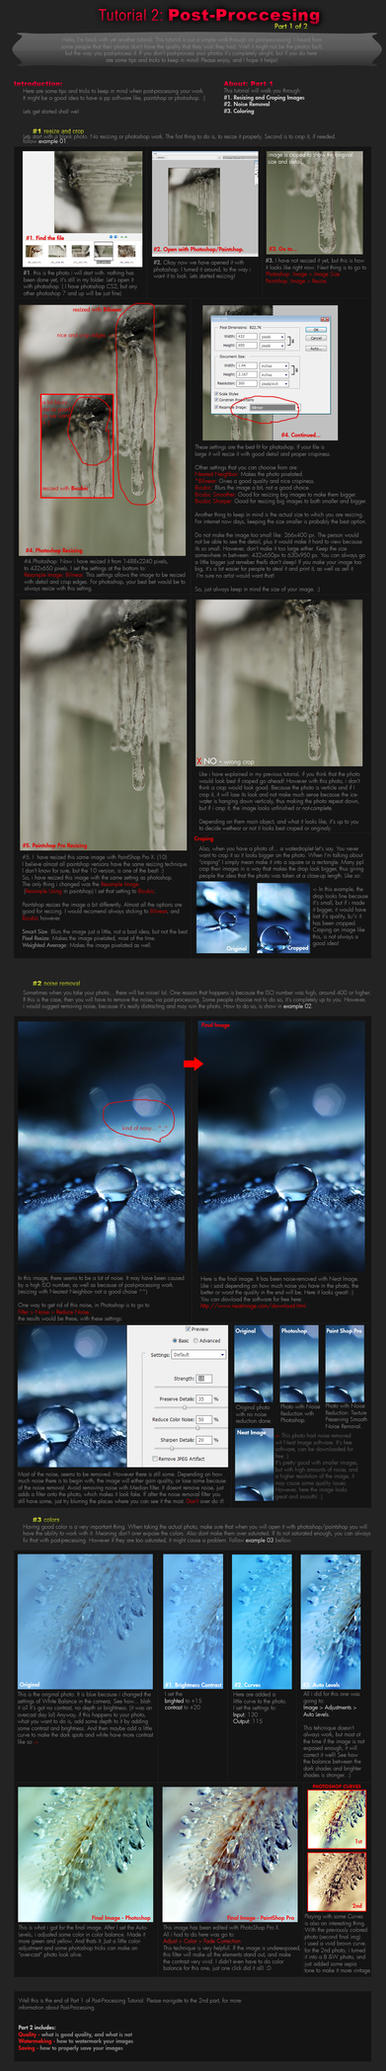 Tutorial 2: Post-Processing P1 by onixa